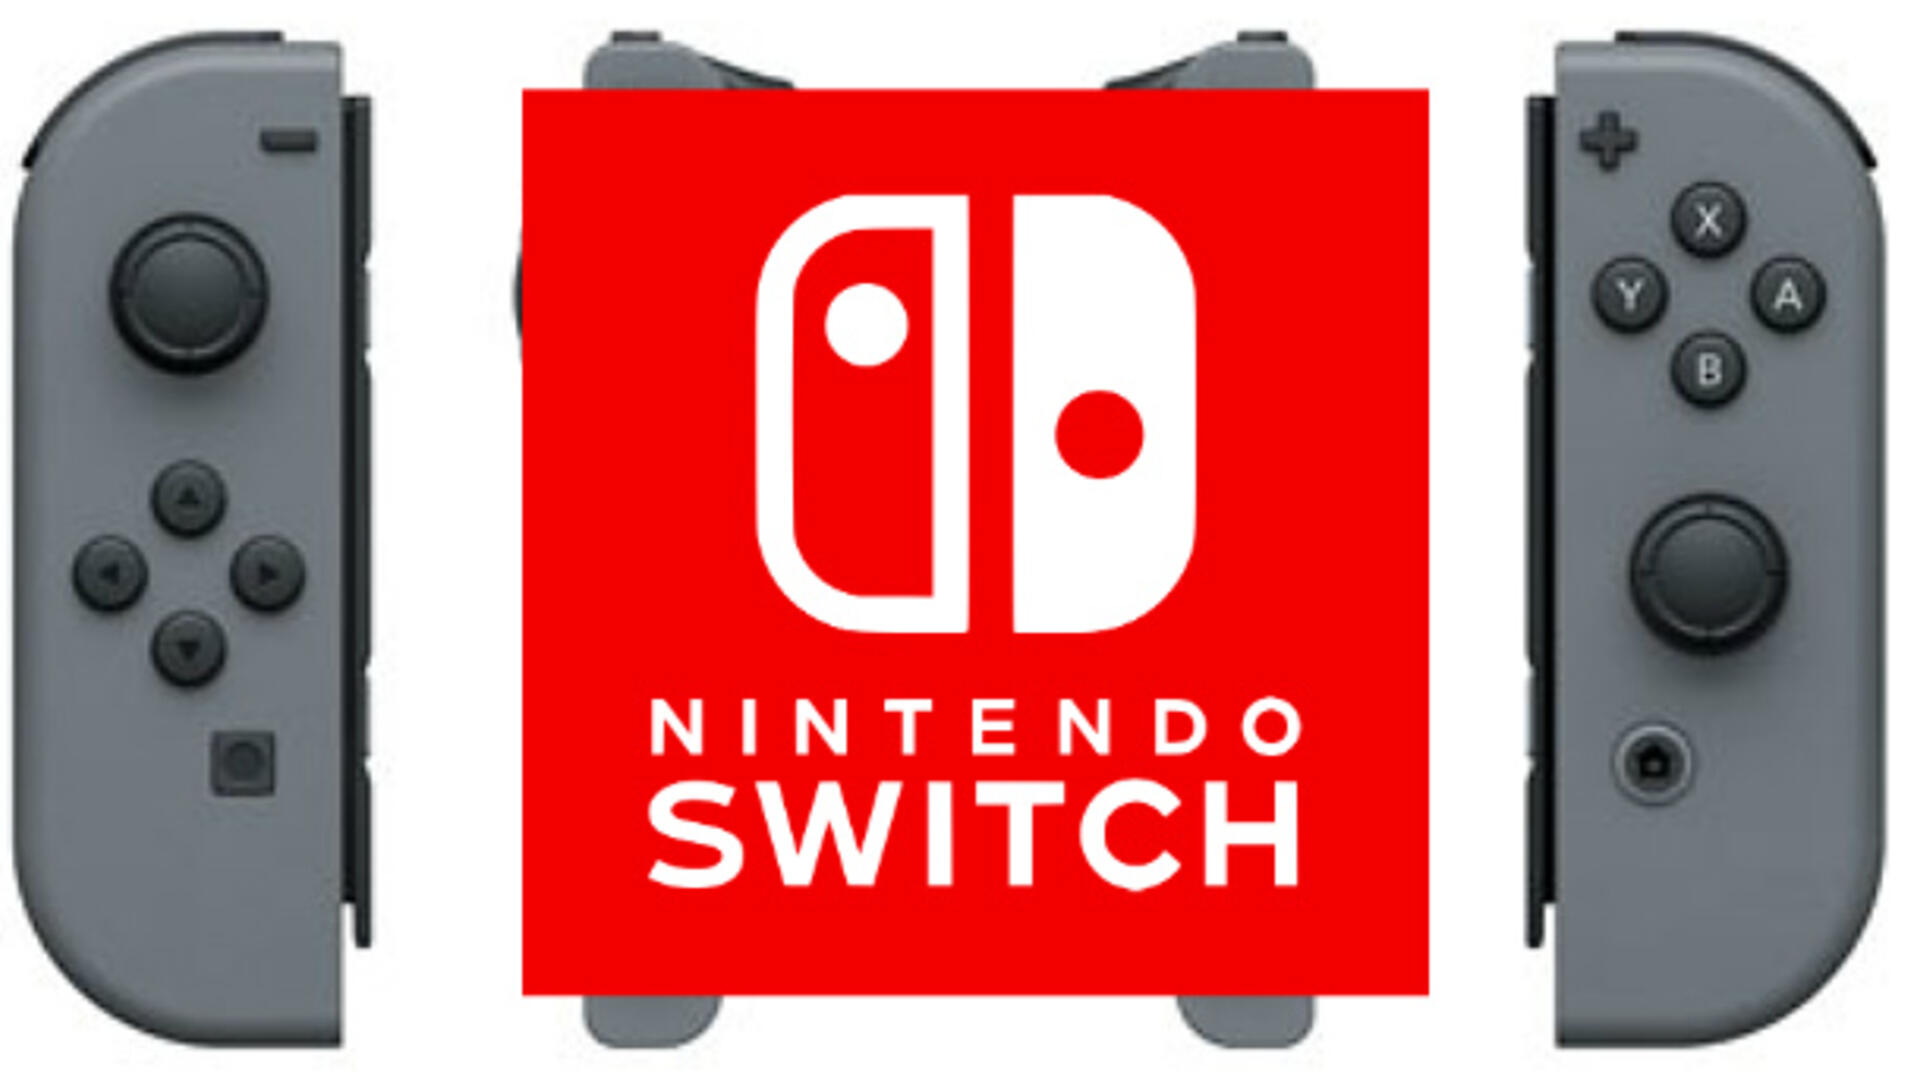 What Accessories Should You Buy For Your Nintendo Switch?